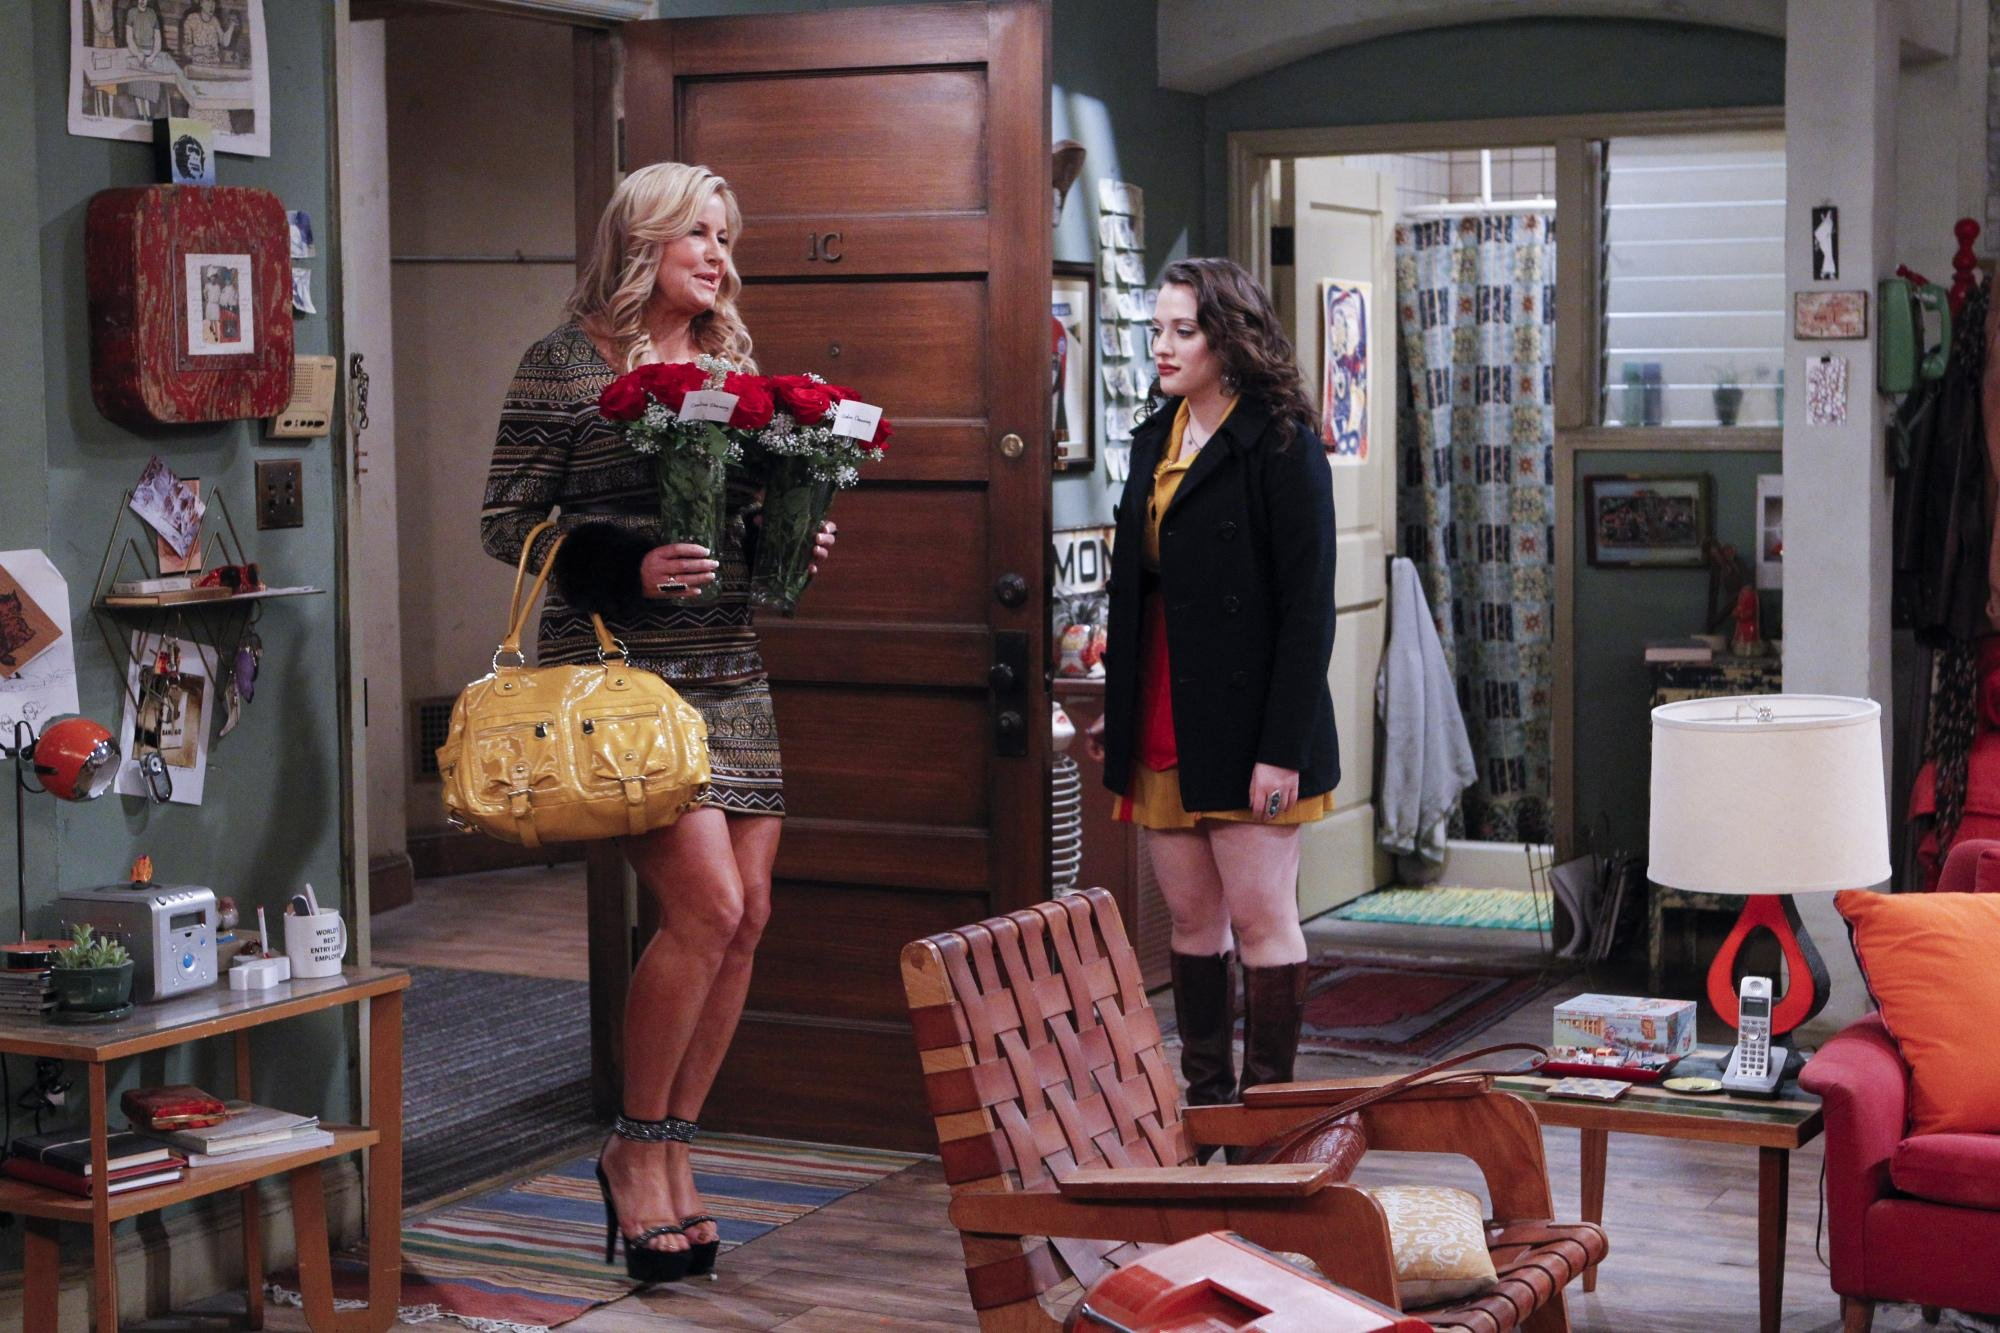 2 BROKE GIRLS comedy sitcom series babe (21)